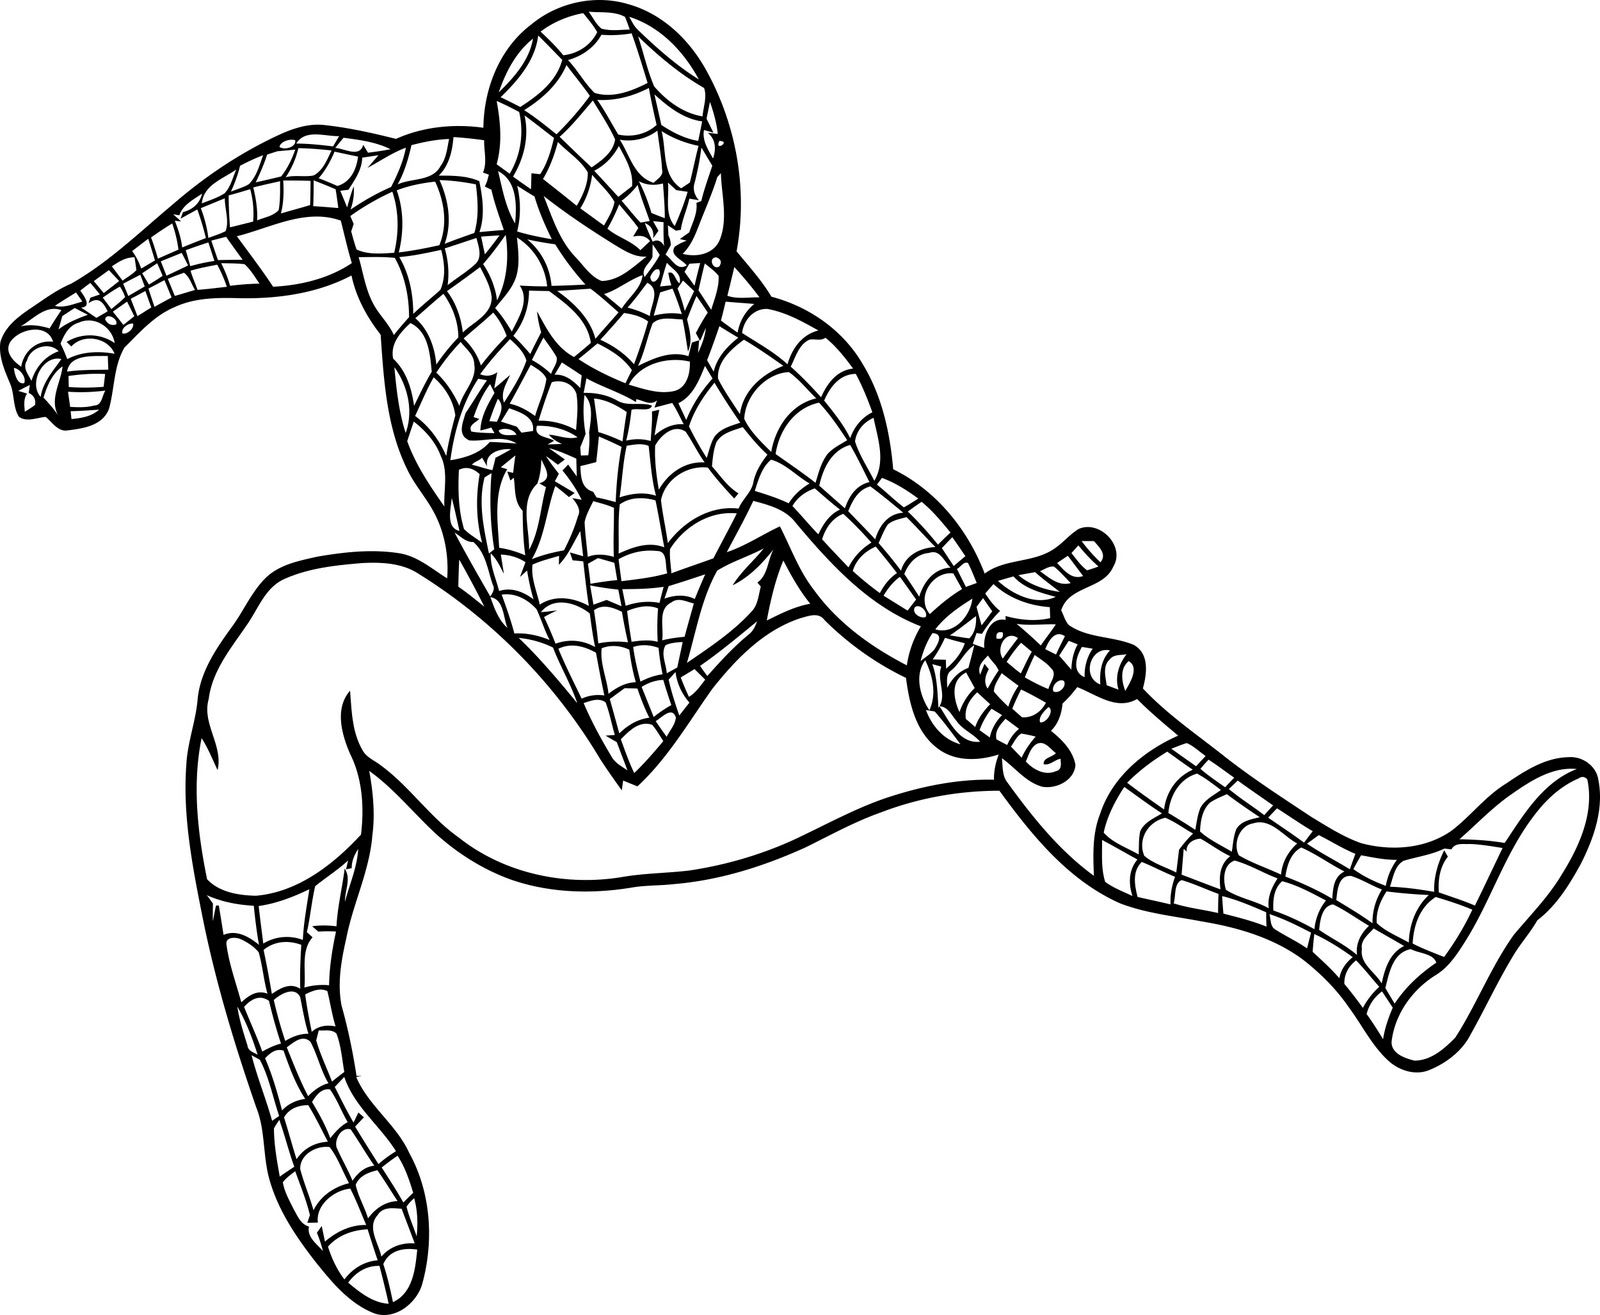 Free Printable Spiderman Coloring Pages For Kids | Projects